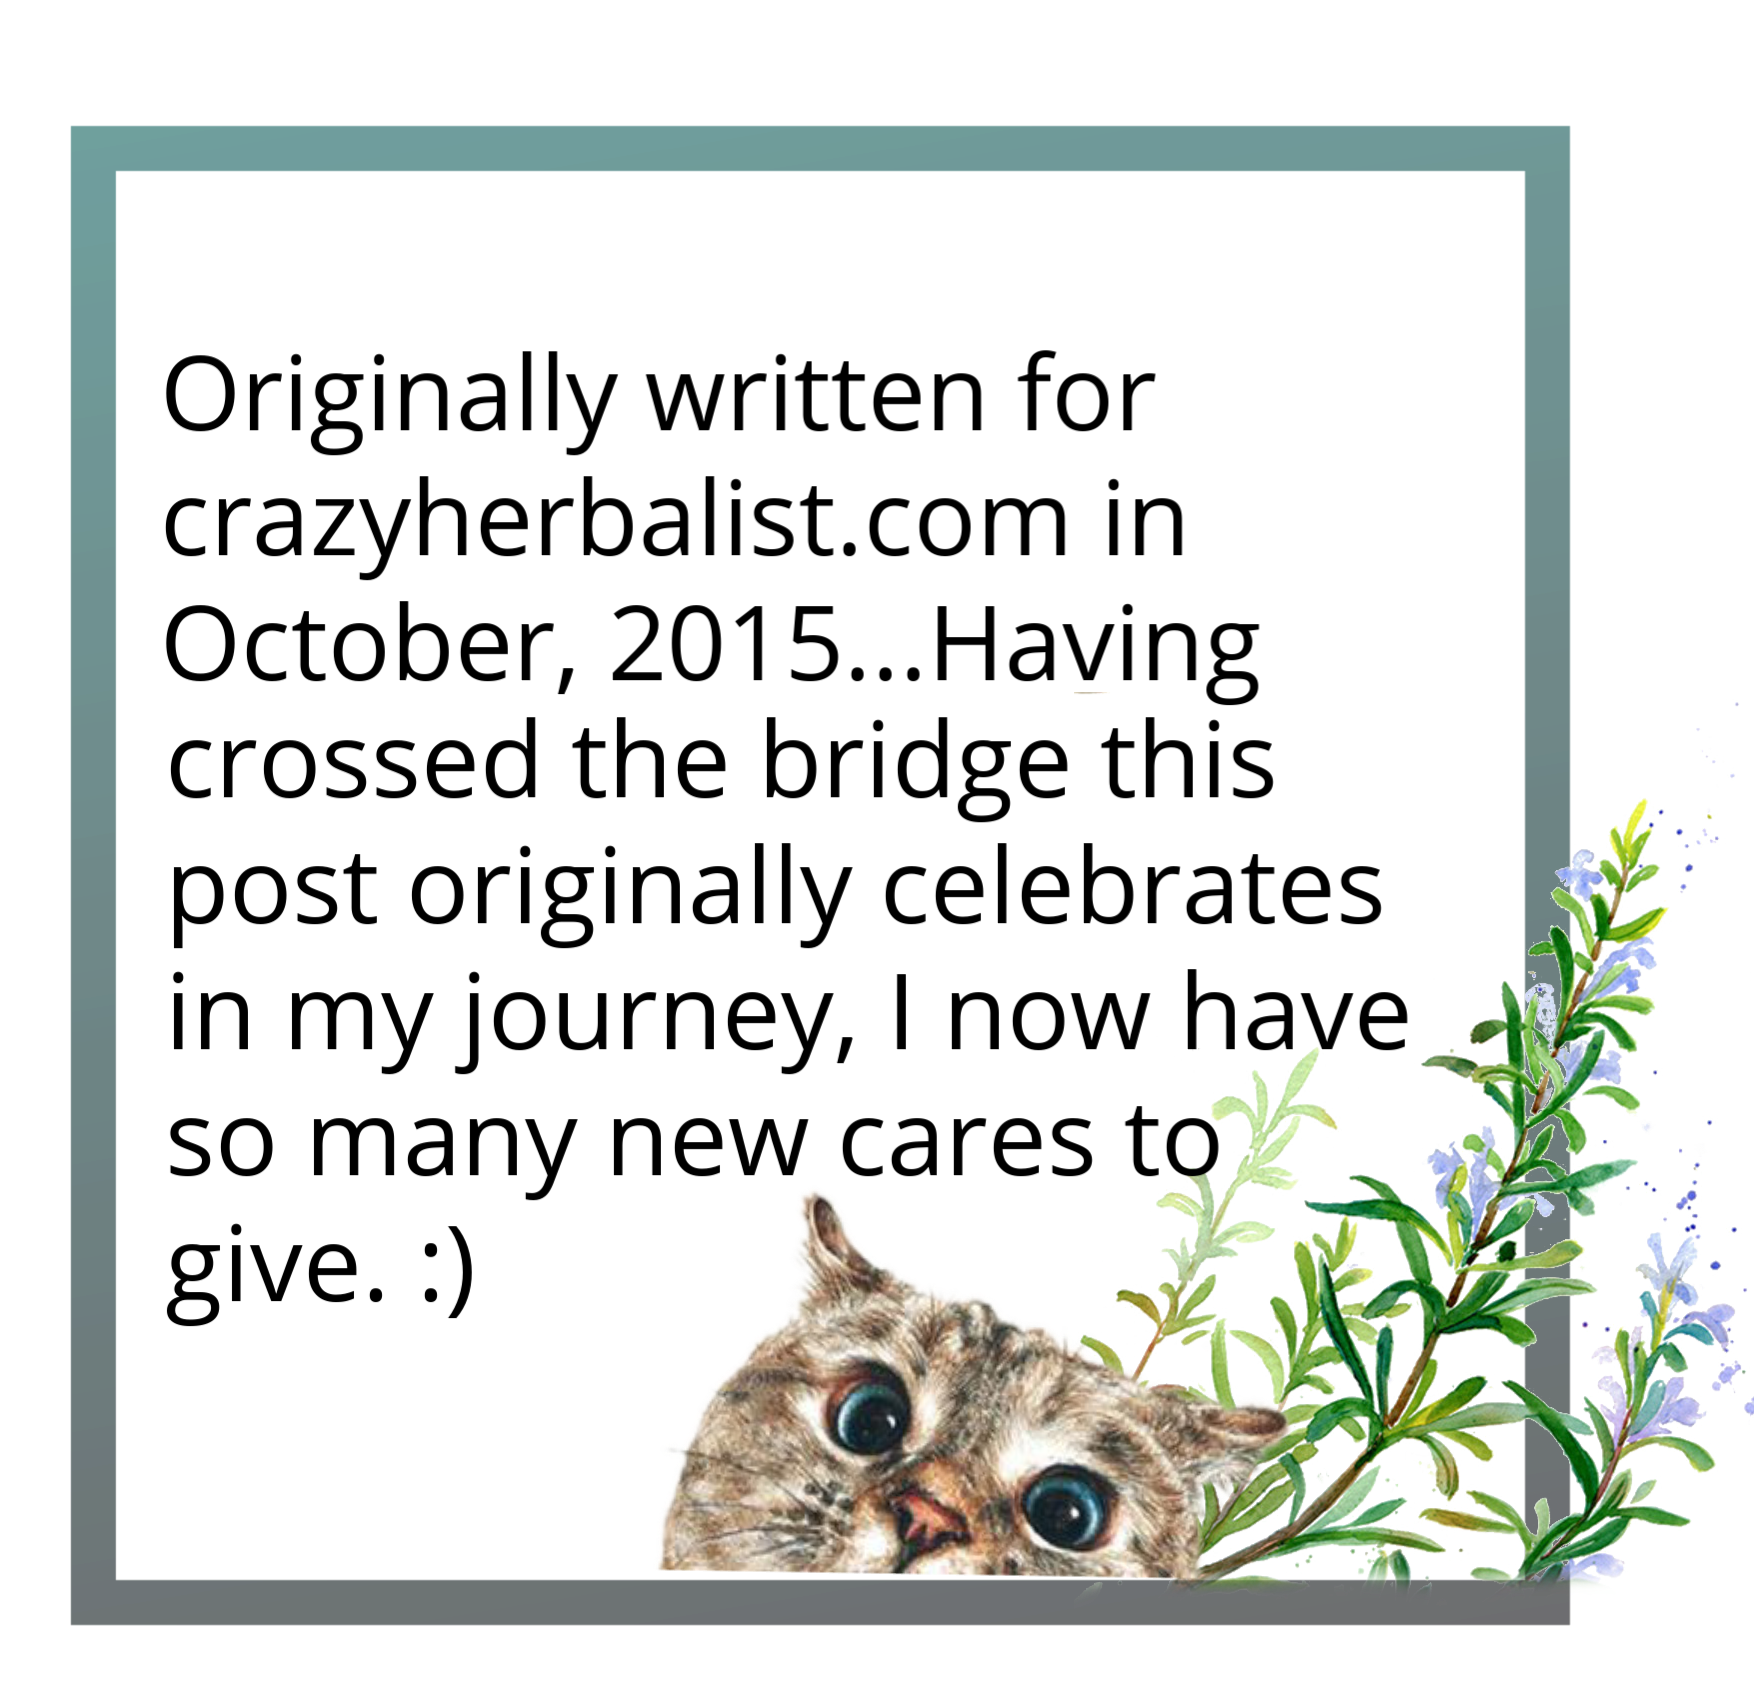 a light blue grey square with black text that reads originally written for crazyherbalist.com in October 2015 and having crossed the bridge in my journey this post celebrates I now have so many new cares to give. There is a graphic of an orange cat head peaking up at the bottom with some rosemary leaves behind it